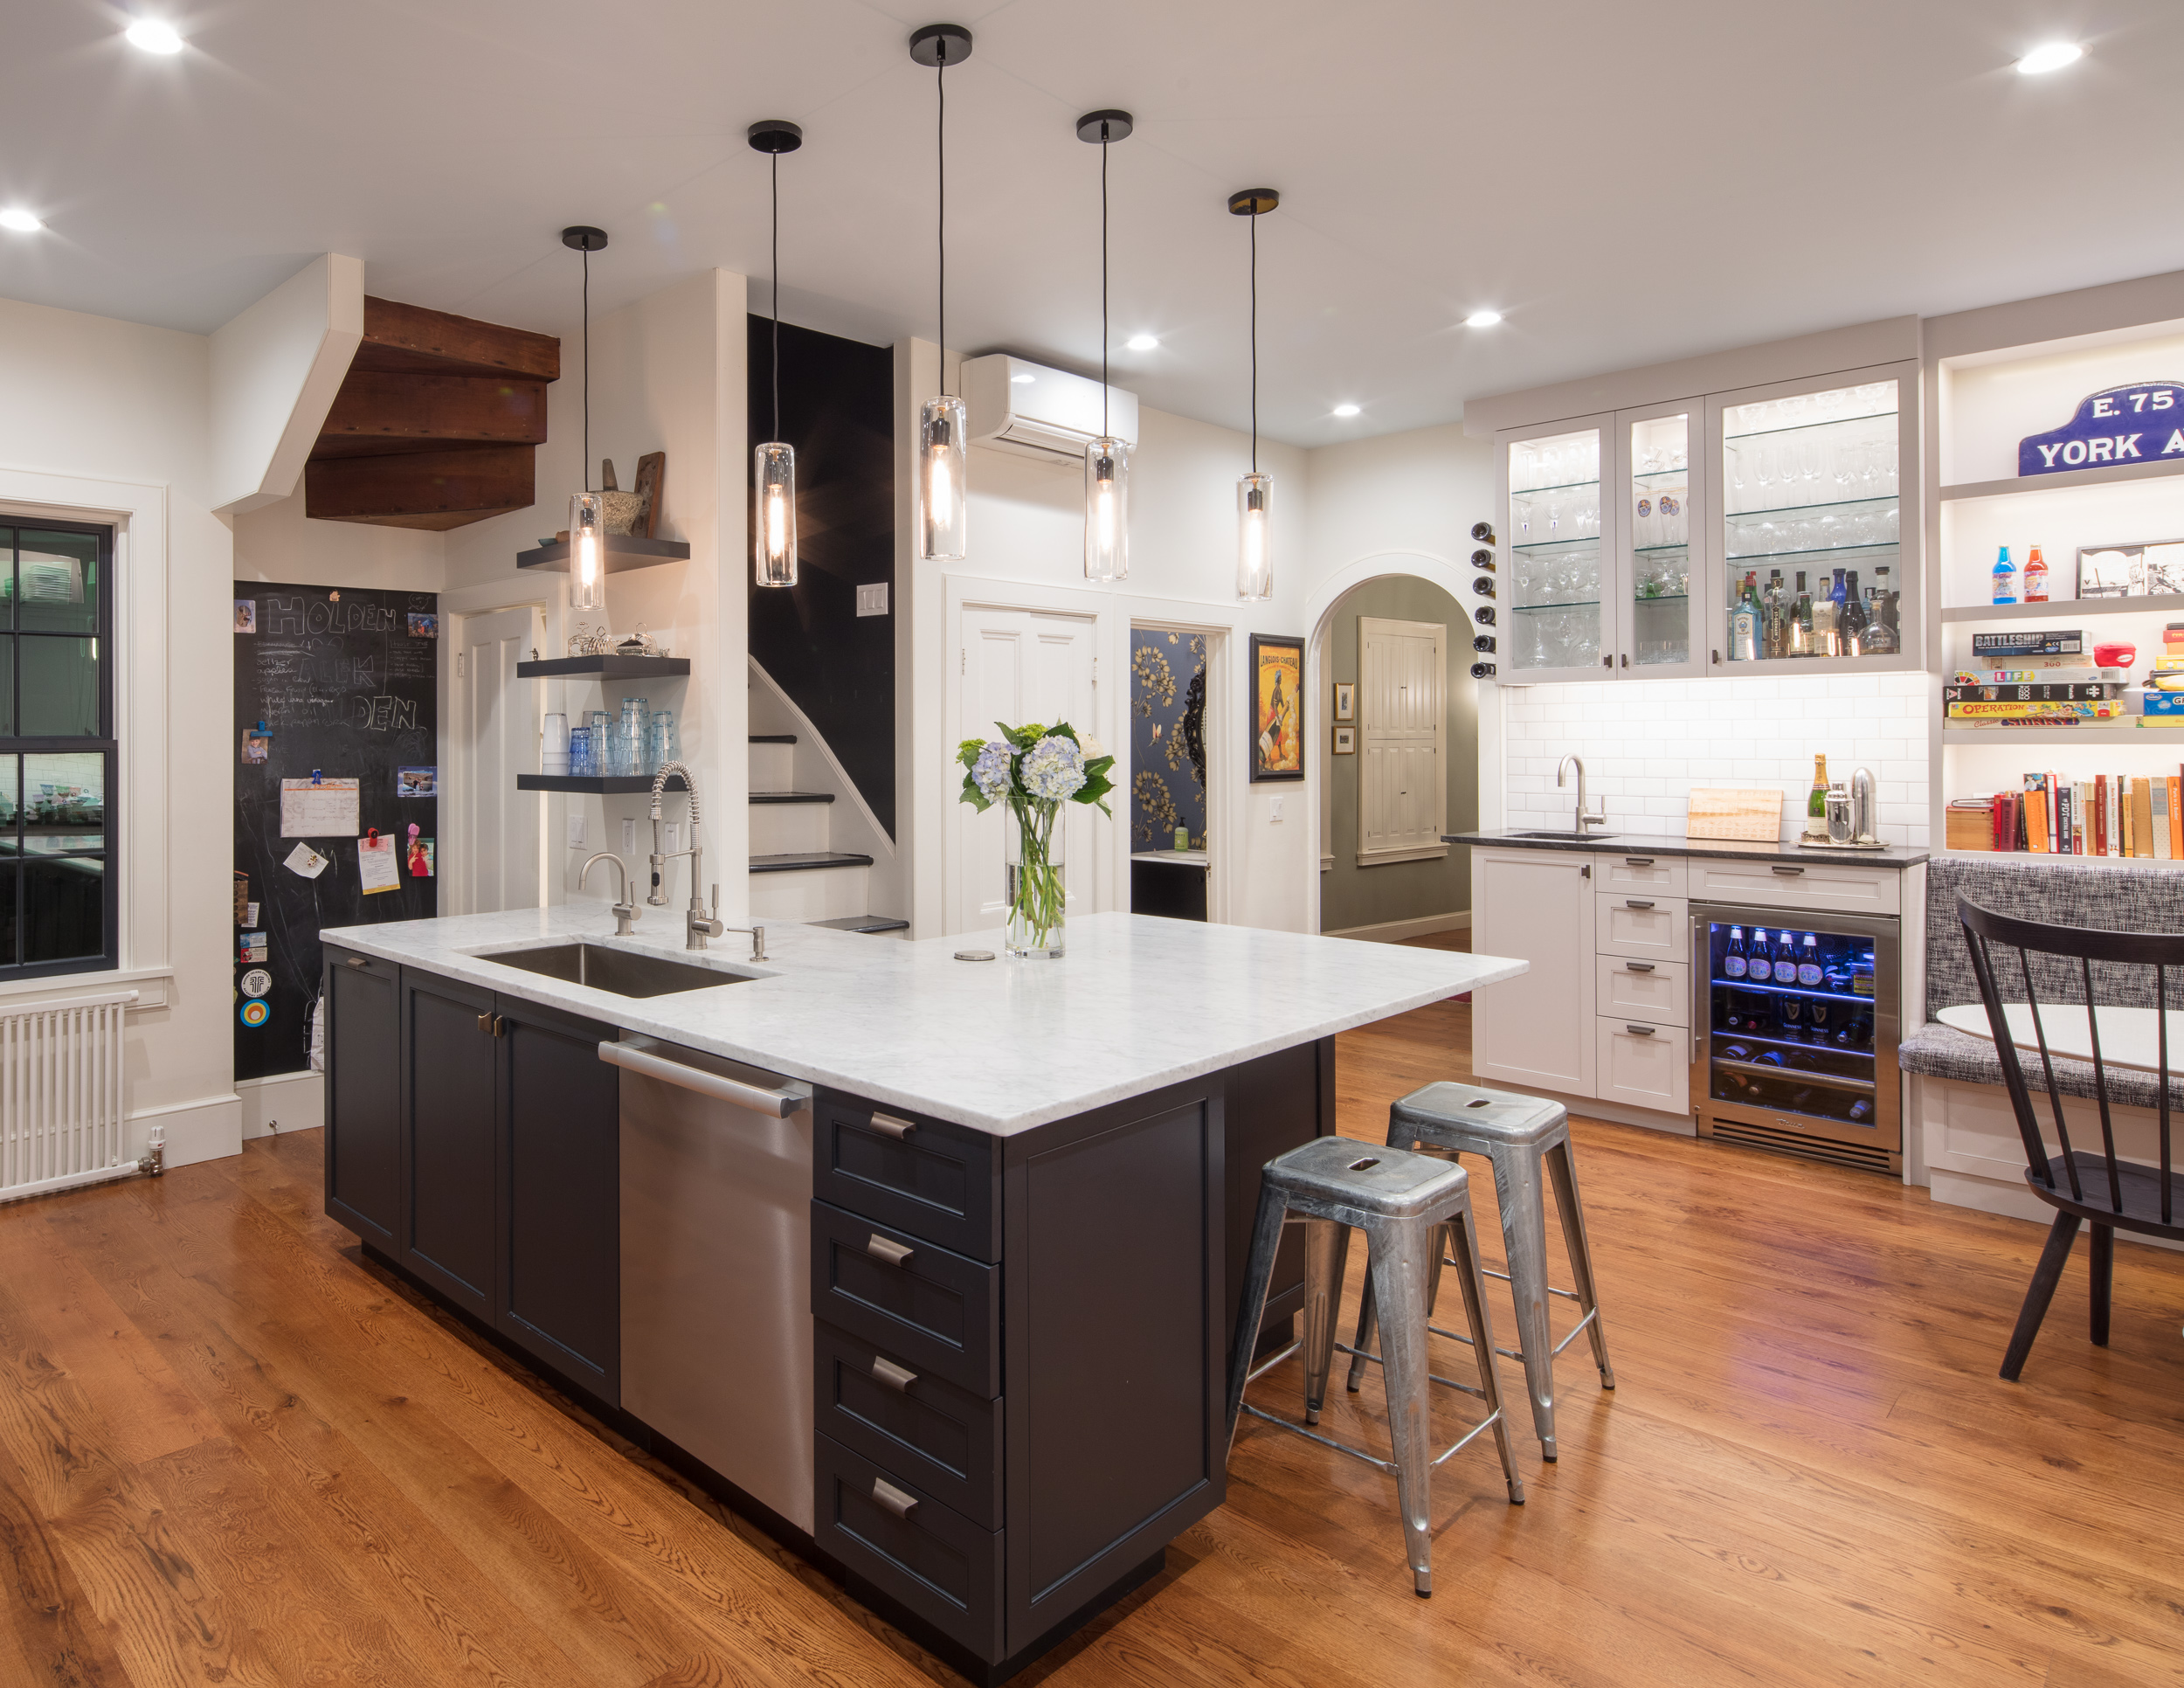 Kitchen renovation with an 8-foot addition and a black and white design.